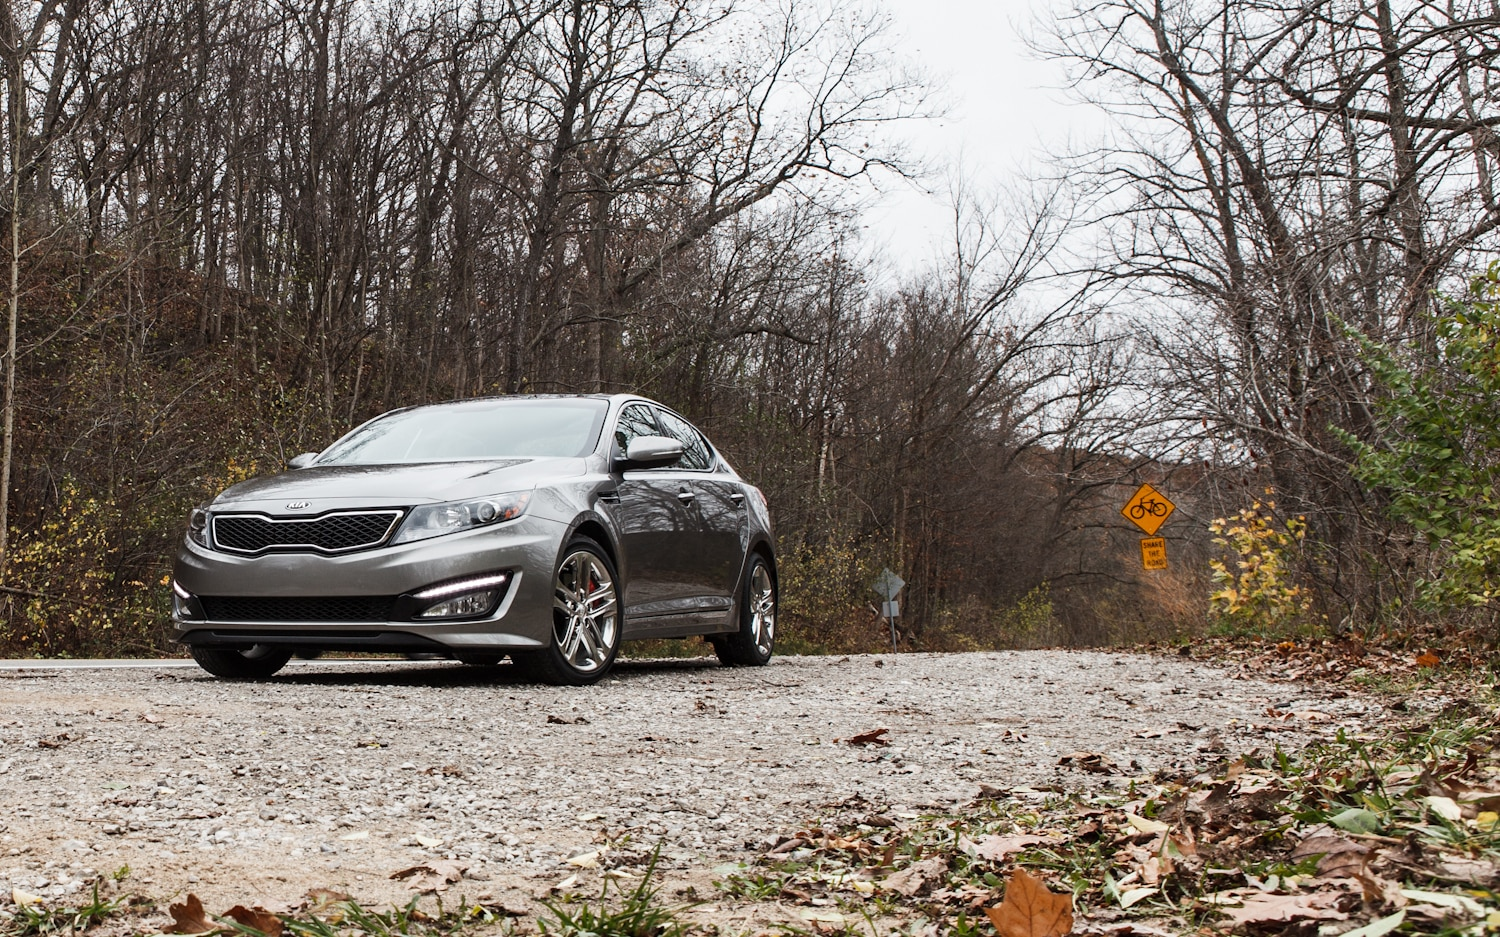 2013 Kia Optima SX Limited Front Left View 21